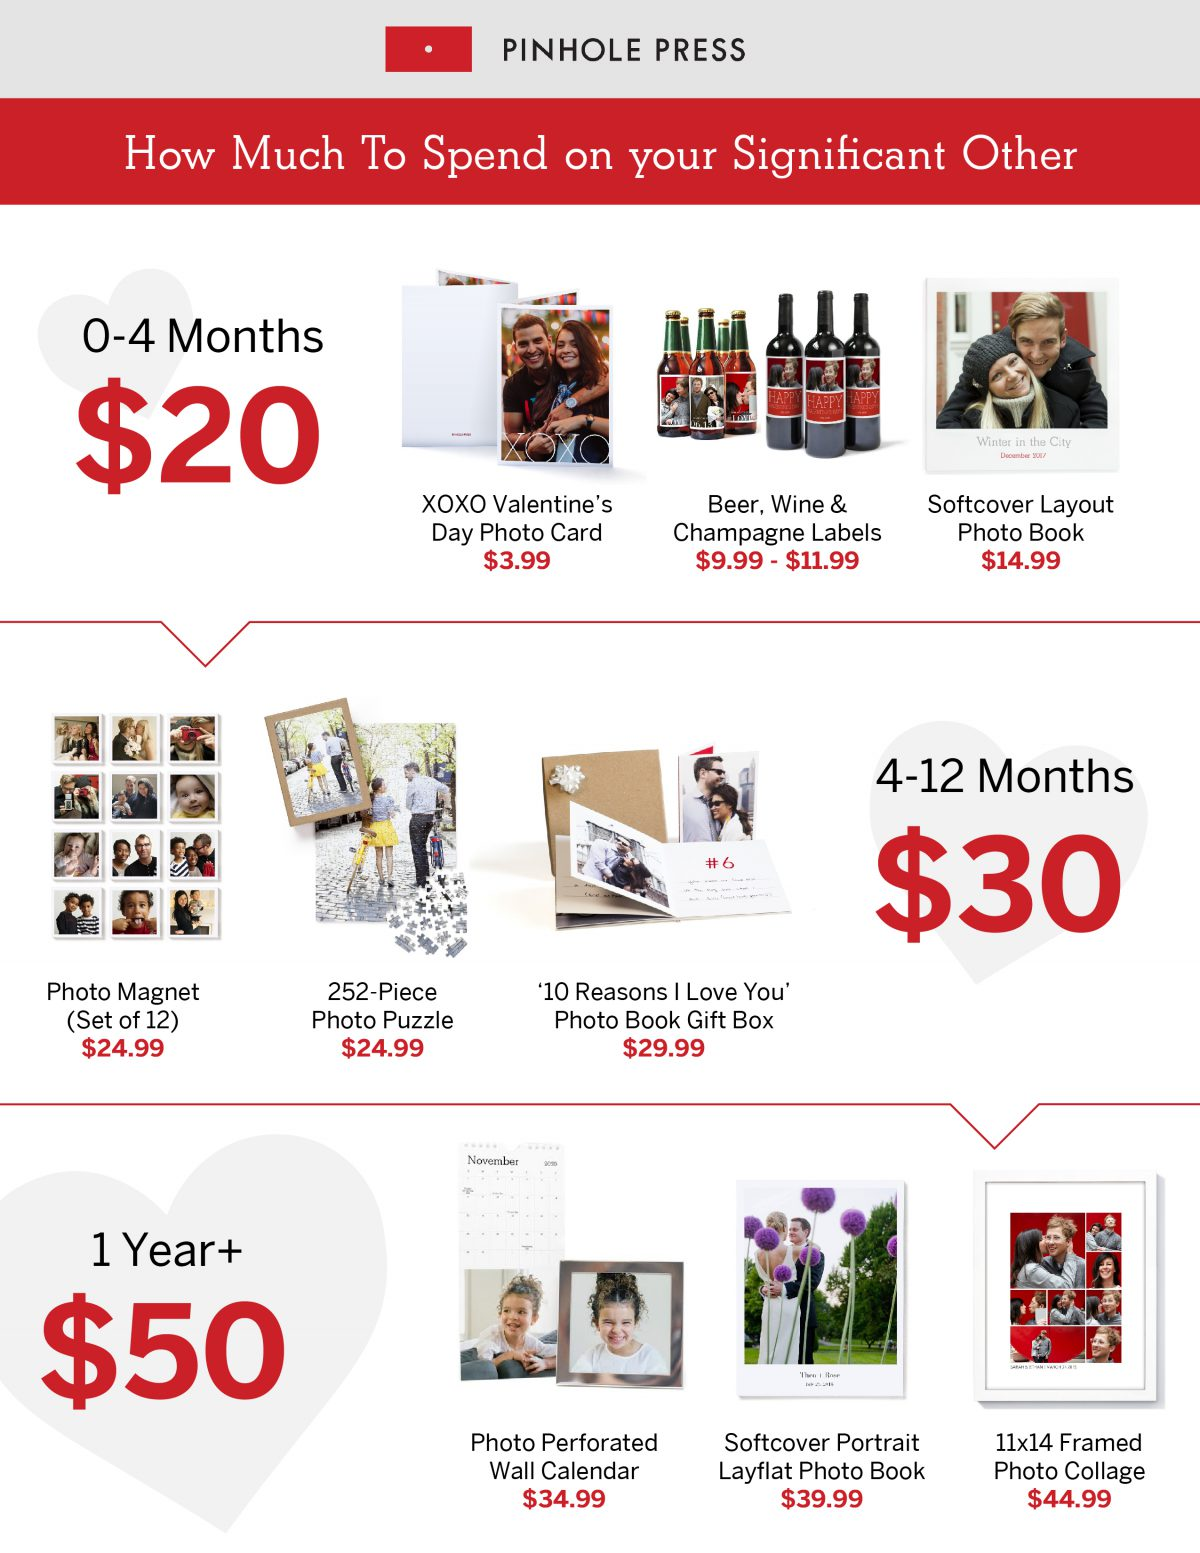 How-Much-To-Spend-On-Infographic-For-Boyfriend-Or-Girlfriend